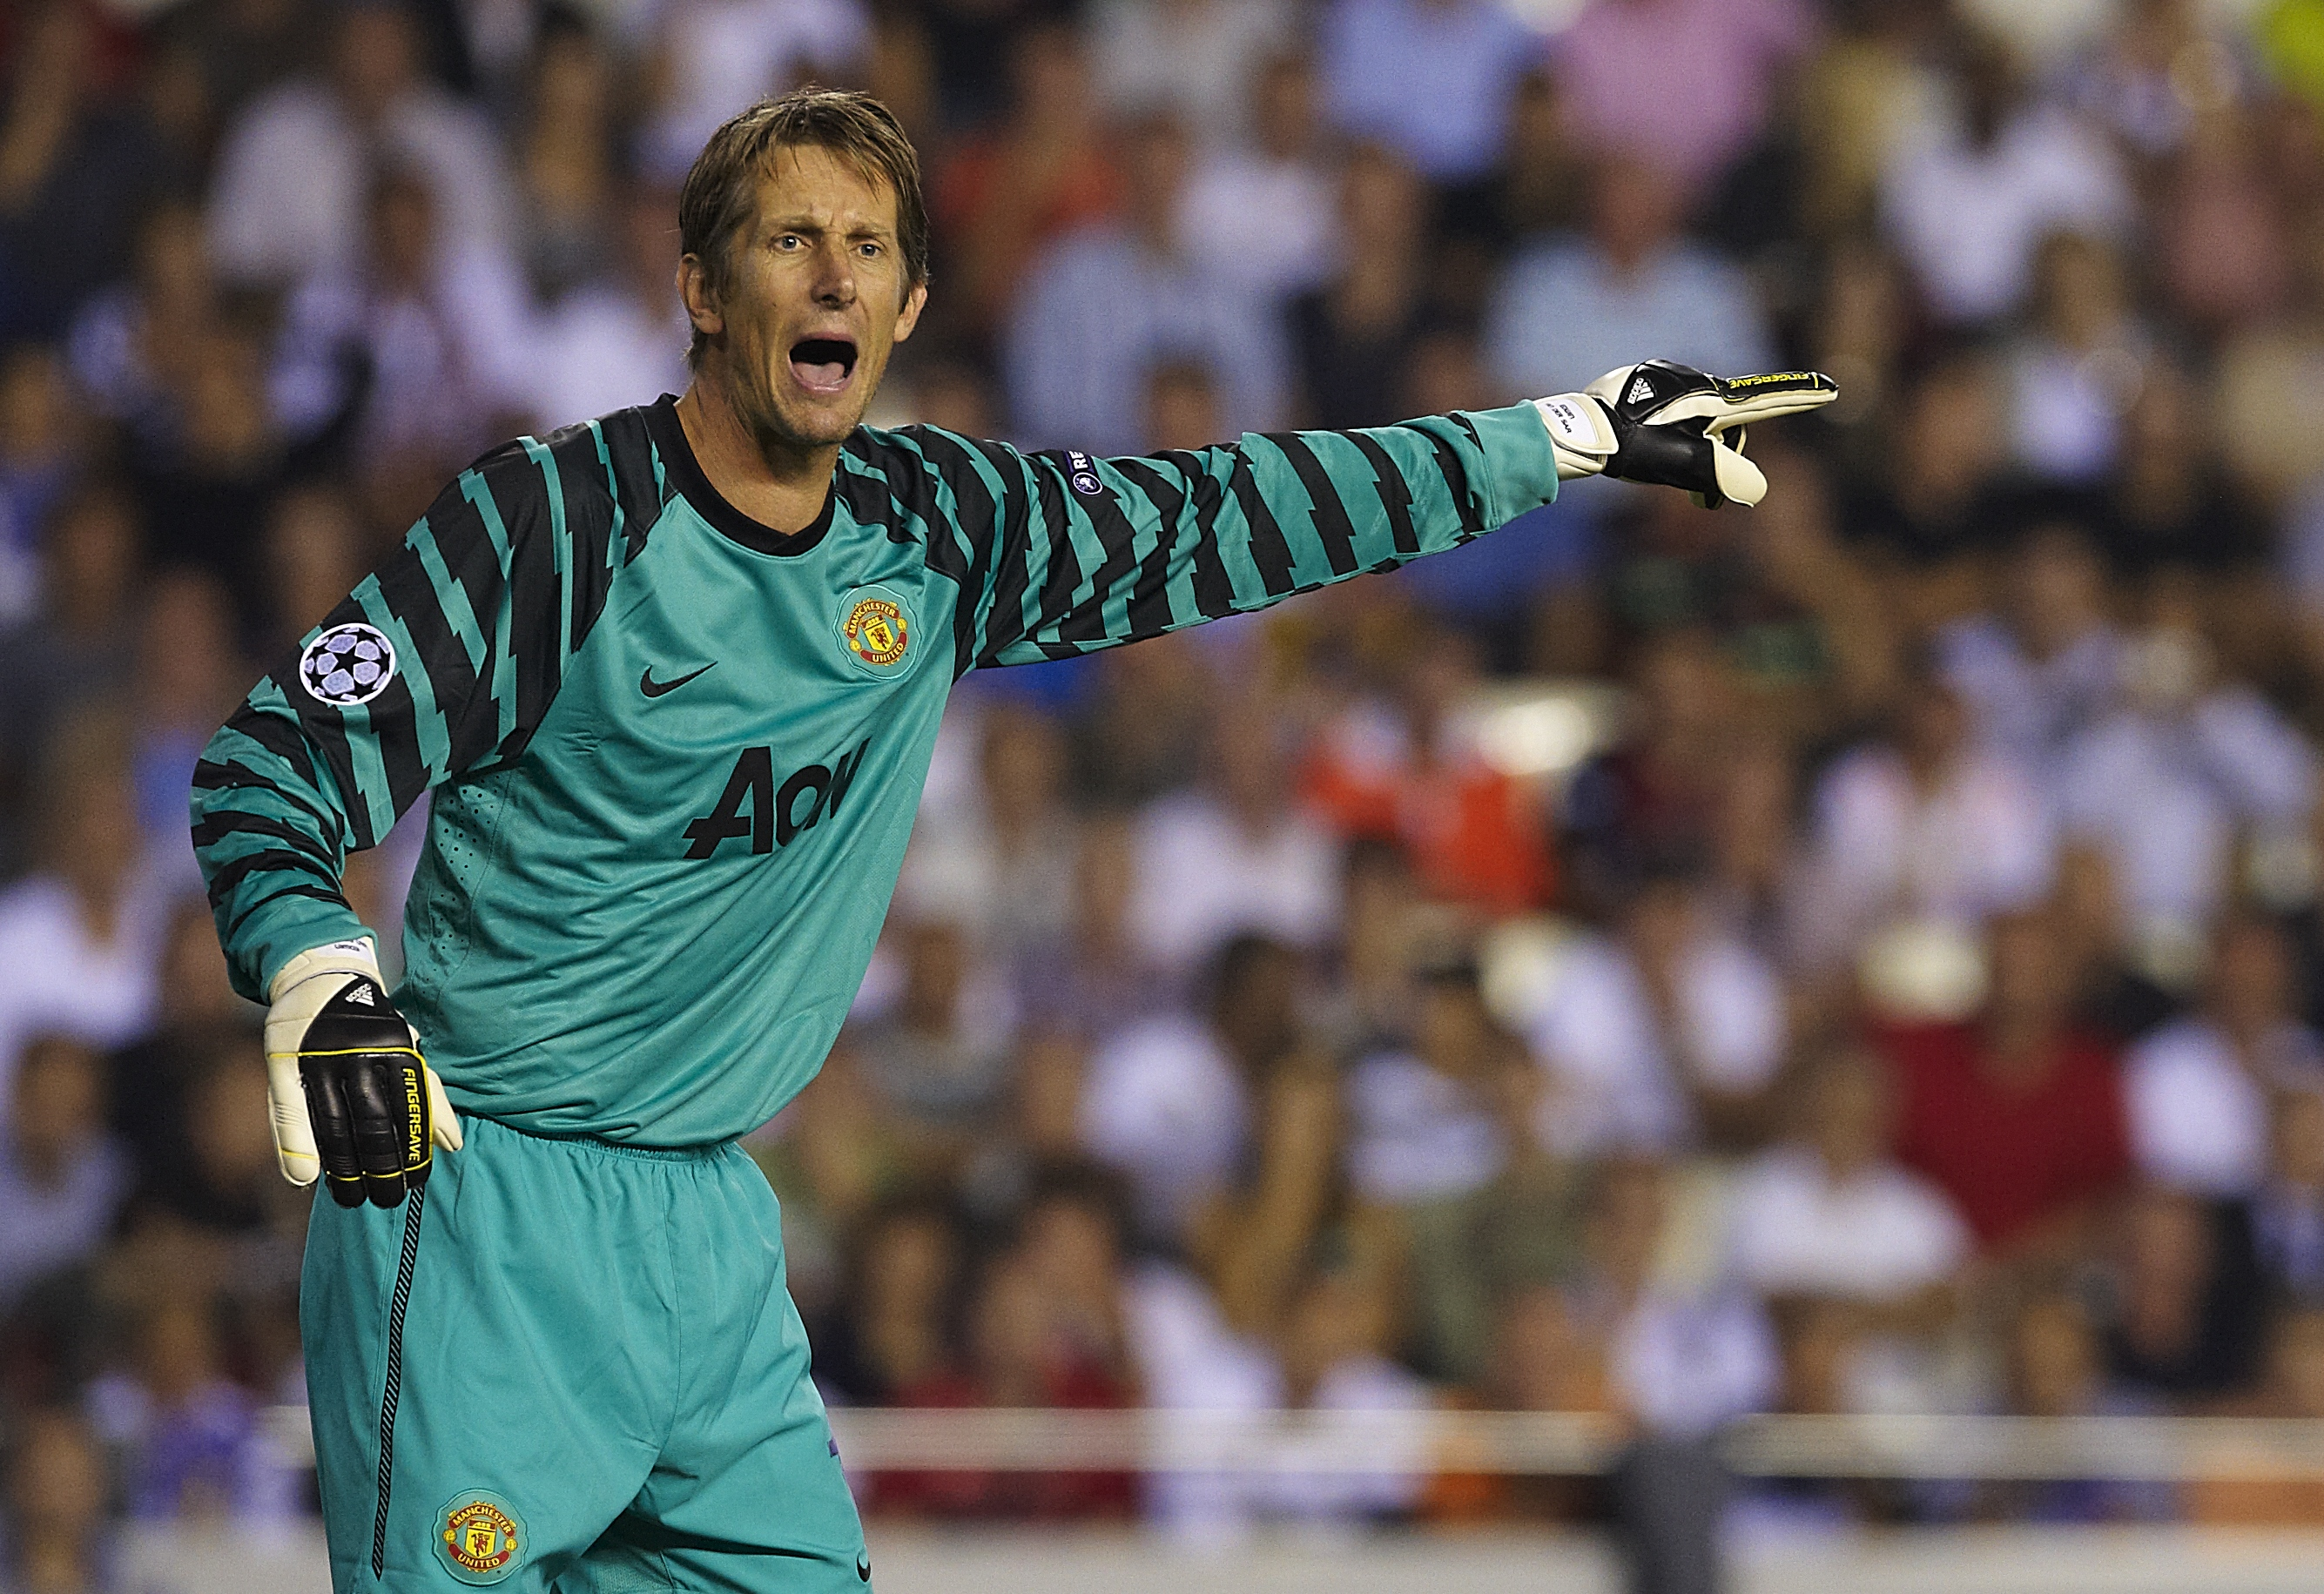 VALENCIA, SPAIN - SEPTEMBER 29:  Edwin Van der Sar of Manchester United reacts during the UEFA Champions League group C match between Valencia and Manchester United on September 29, 2010 in Valencia, Spain. Manchester United 1-0. Manchester United 1-0. (P